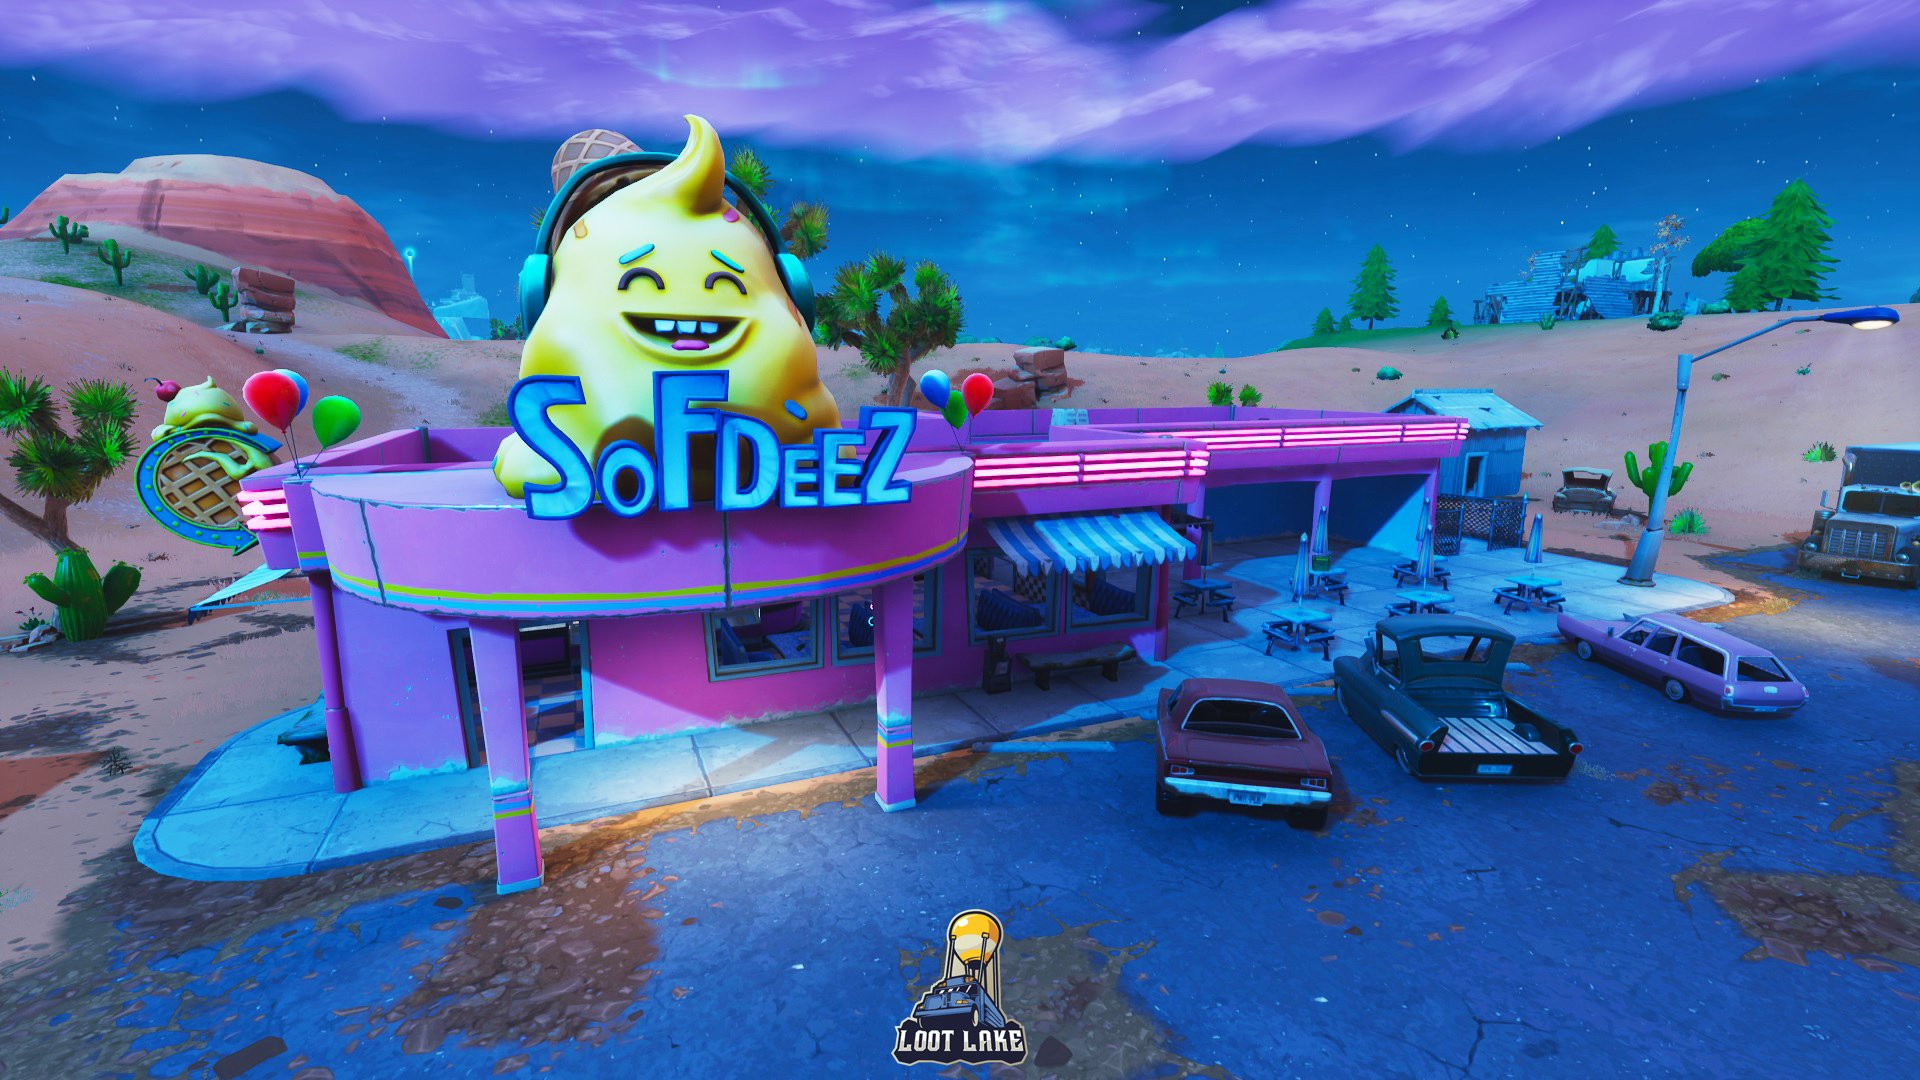 Fortnite SofDeeZ Shop